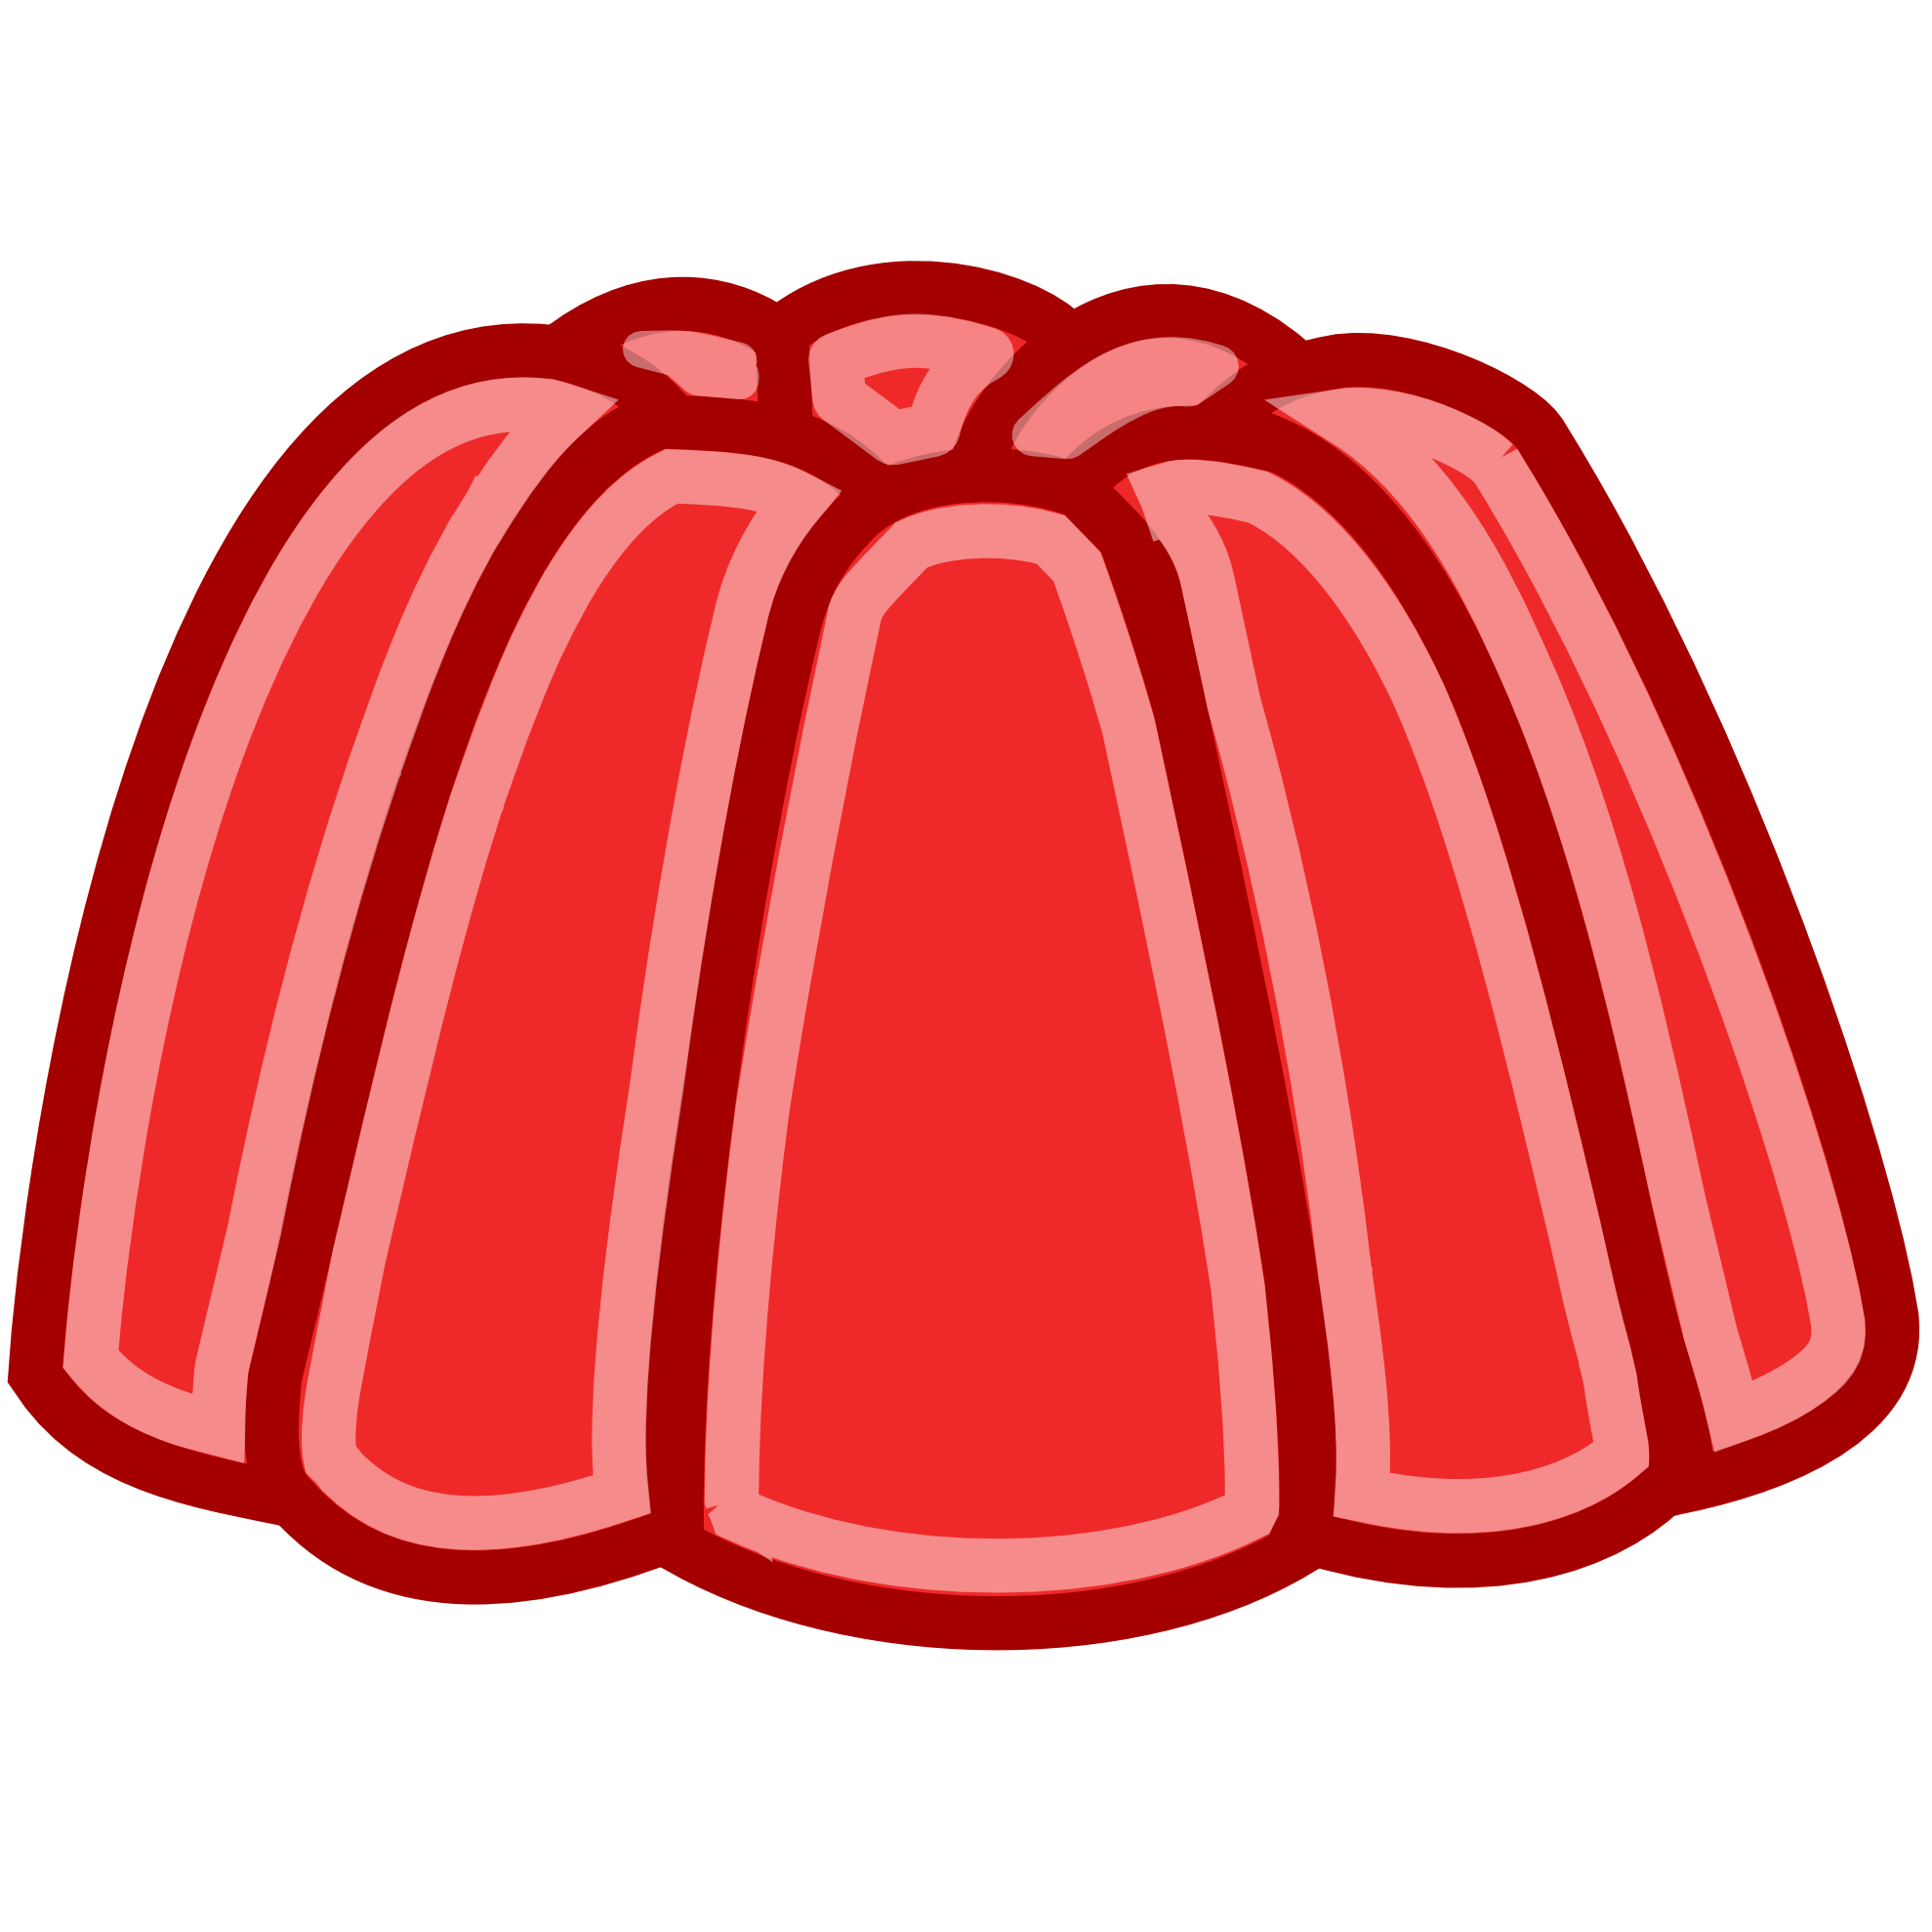 vector royalty free Jelly clipart. Station